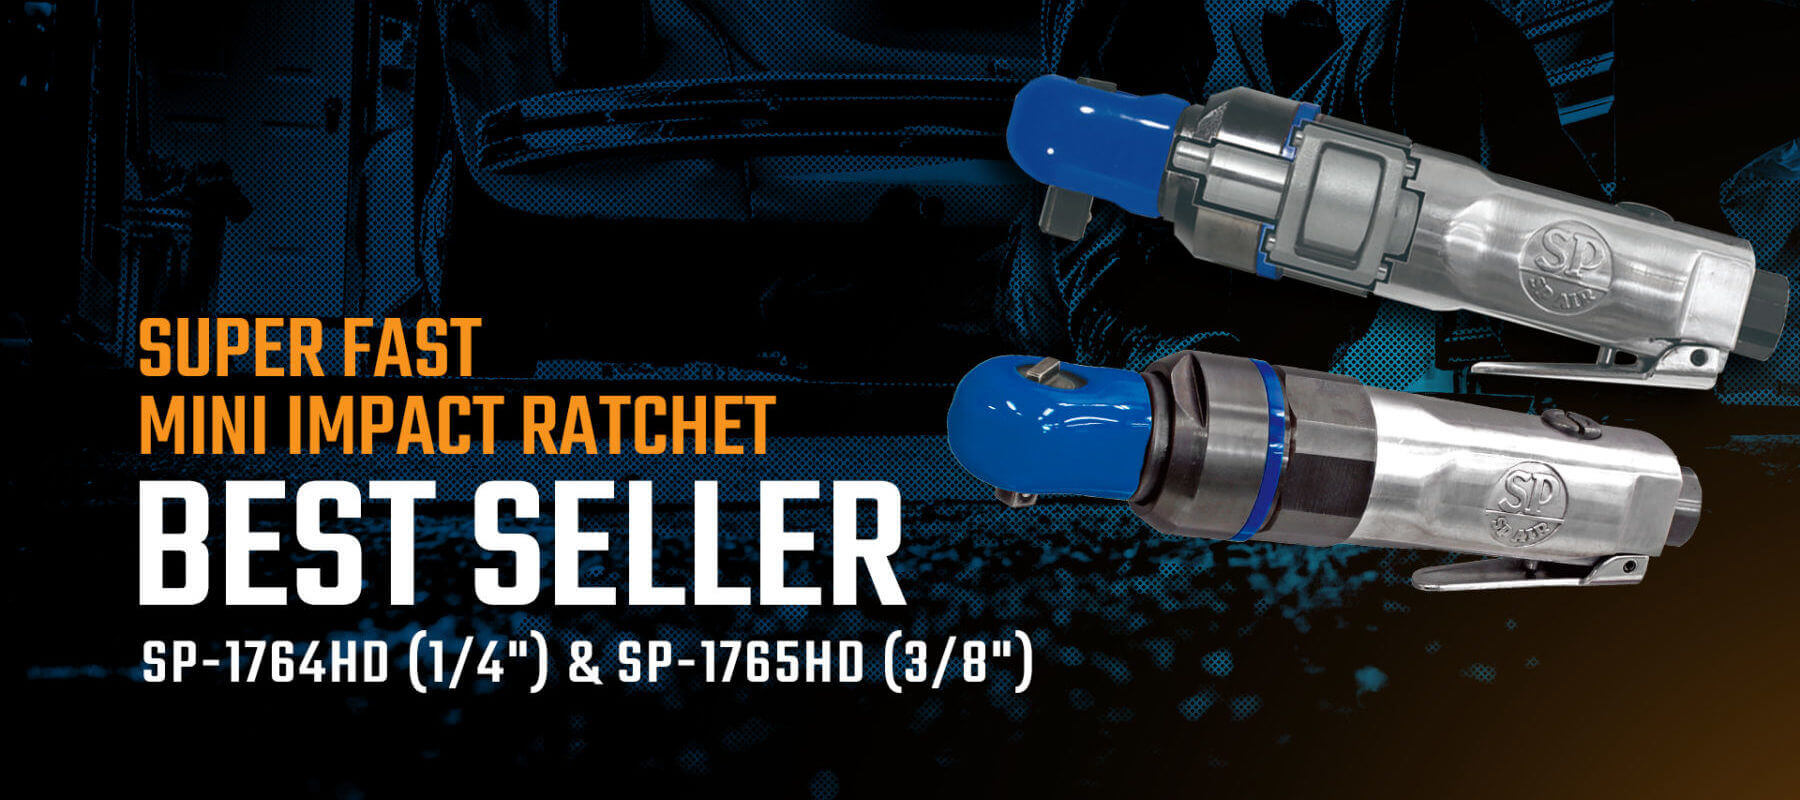 super fast mini impact ratchet